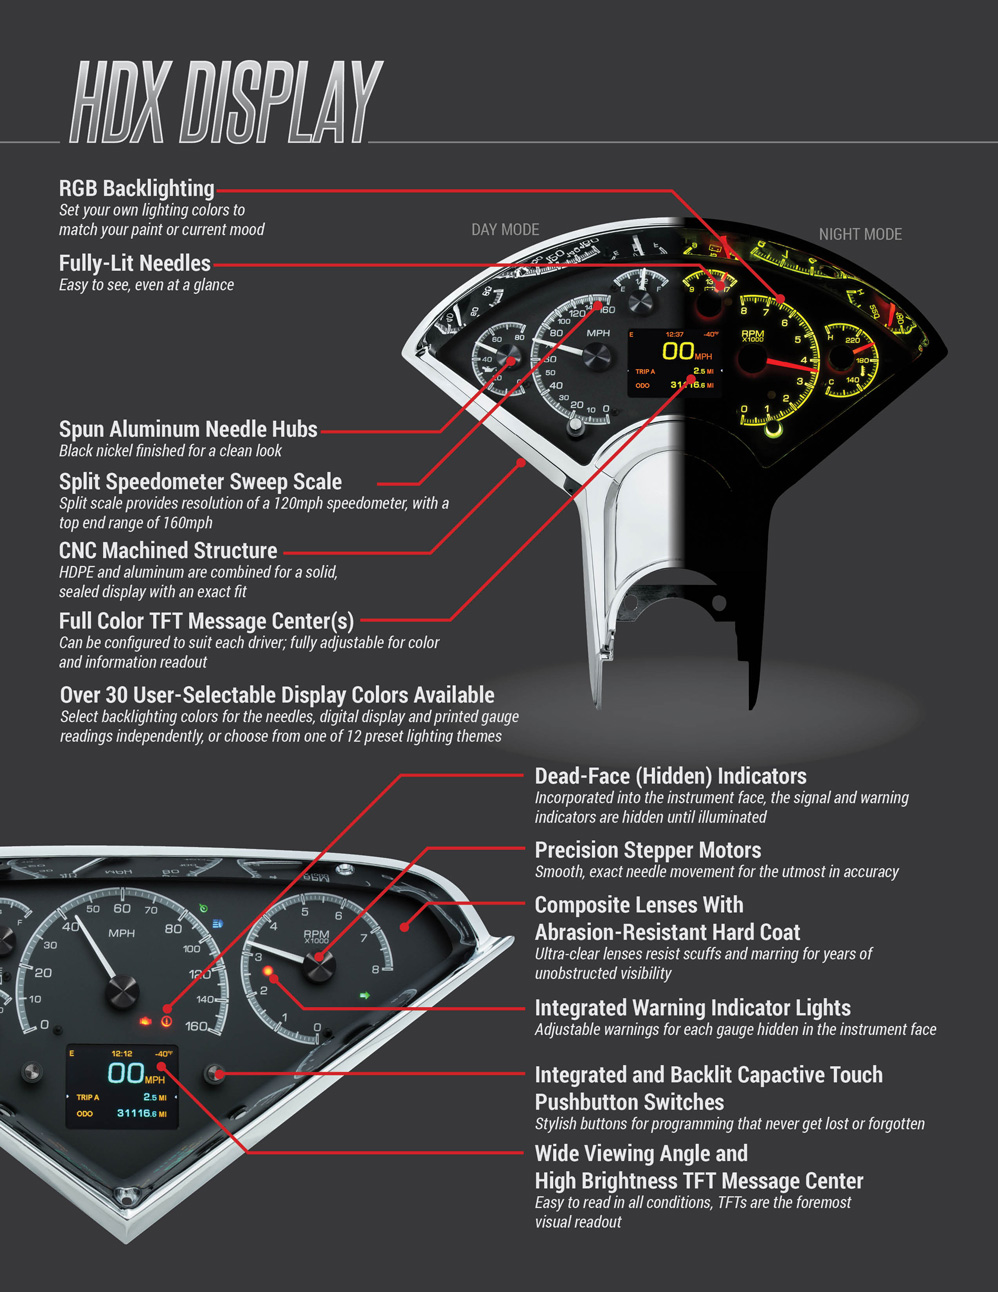 Hdx Series 79 Camaro Tachometer Wiring Diagram Display Information